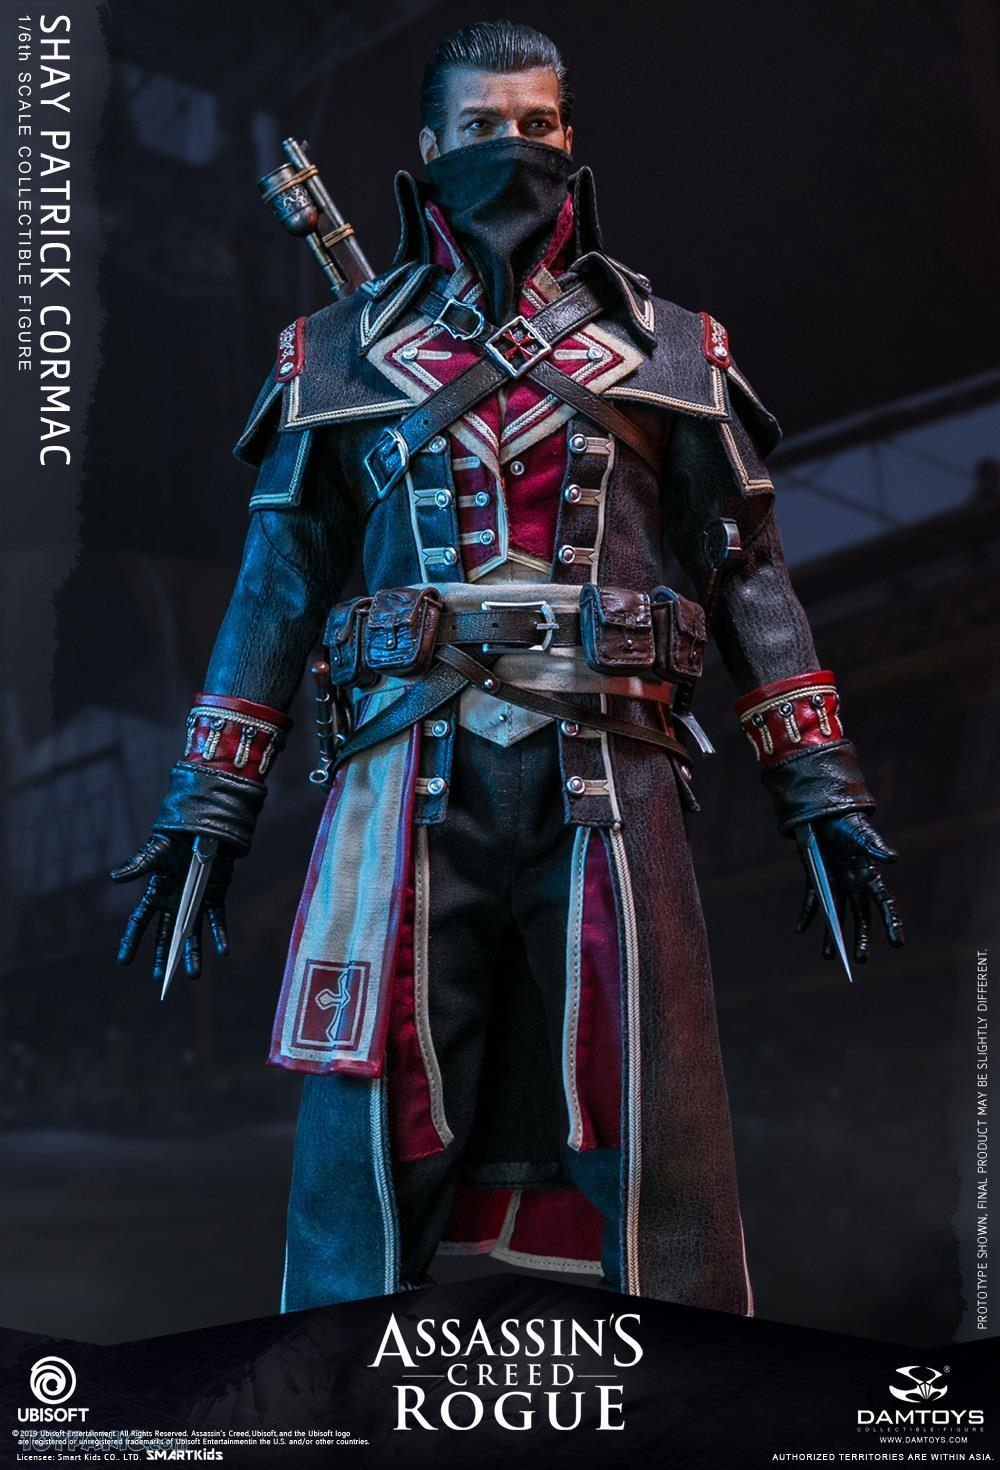 male - NEW PRODUCT: DAMTOYS: Assassins Creed Rogue - 1/6th scale Shay Patrick Cormac Collectible Figure 82220112